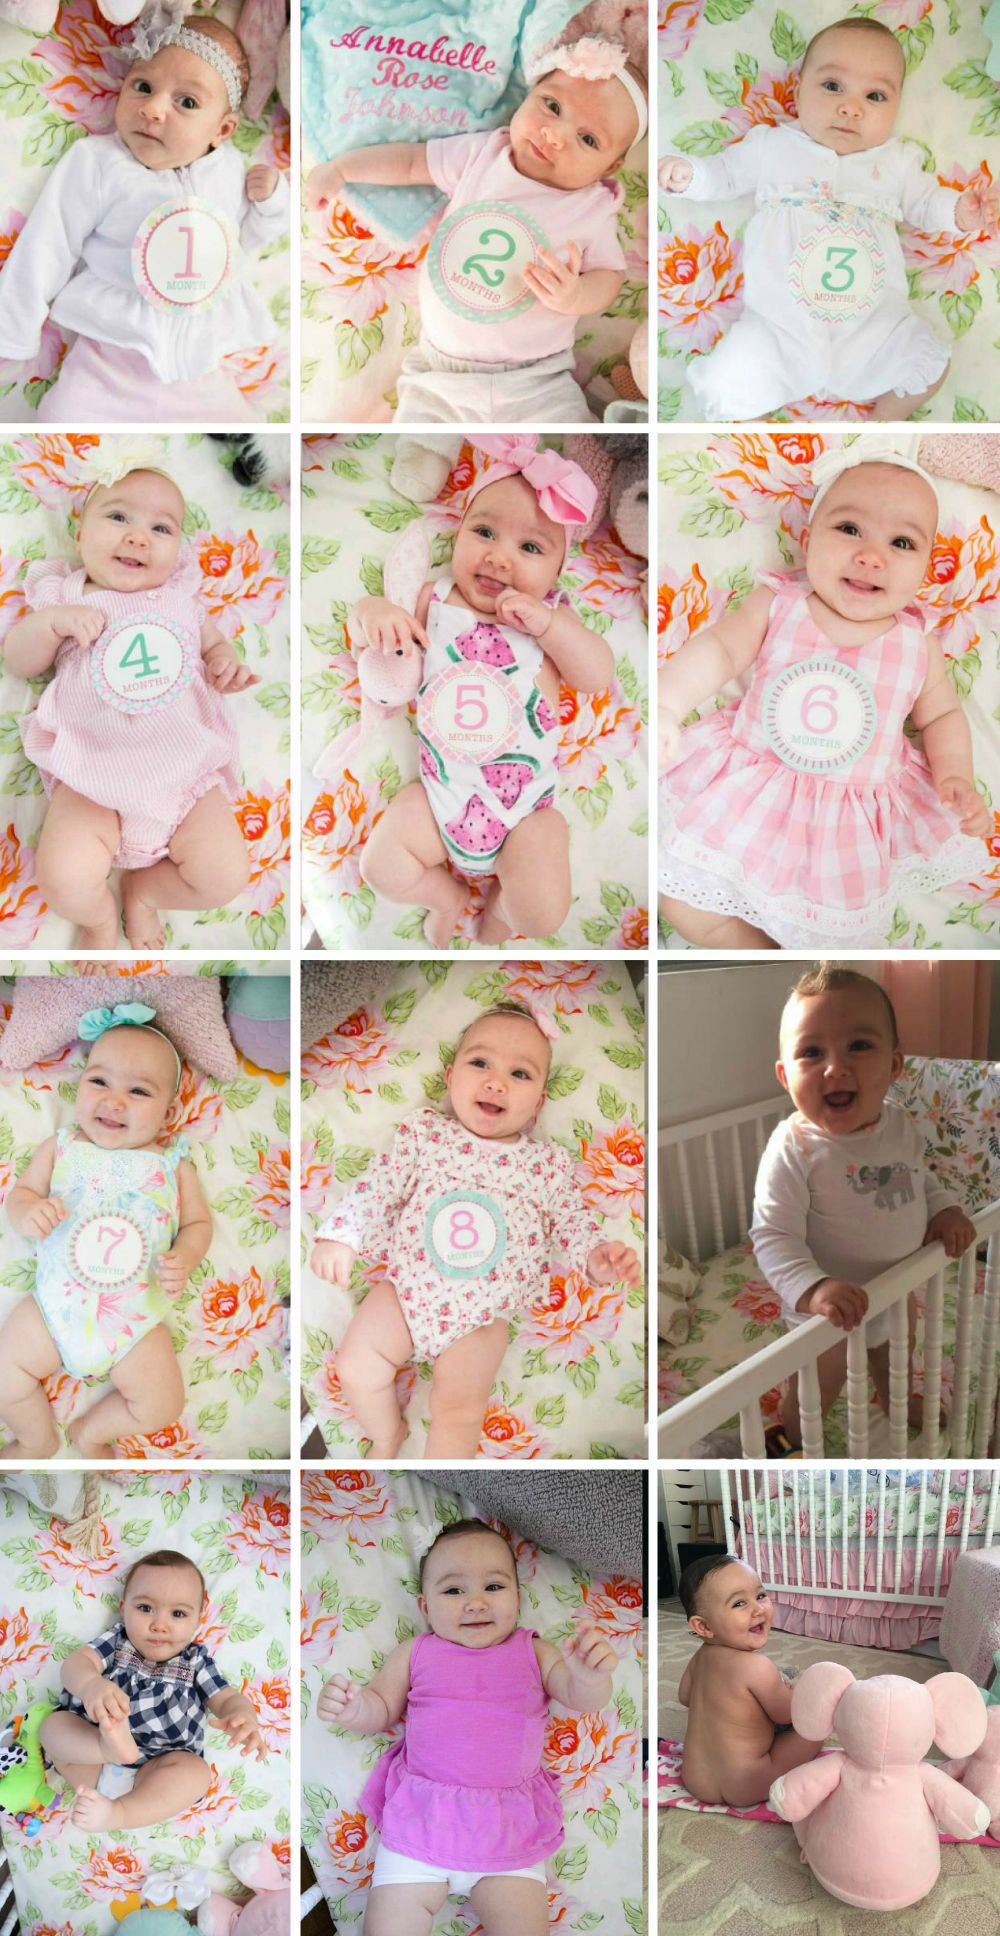 12 MONTHS OF ANNABELLE